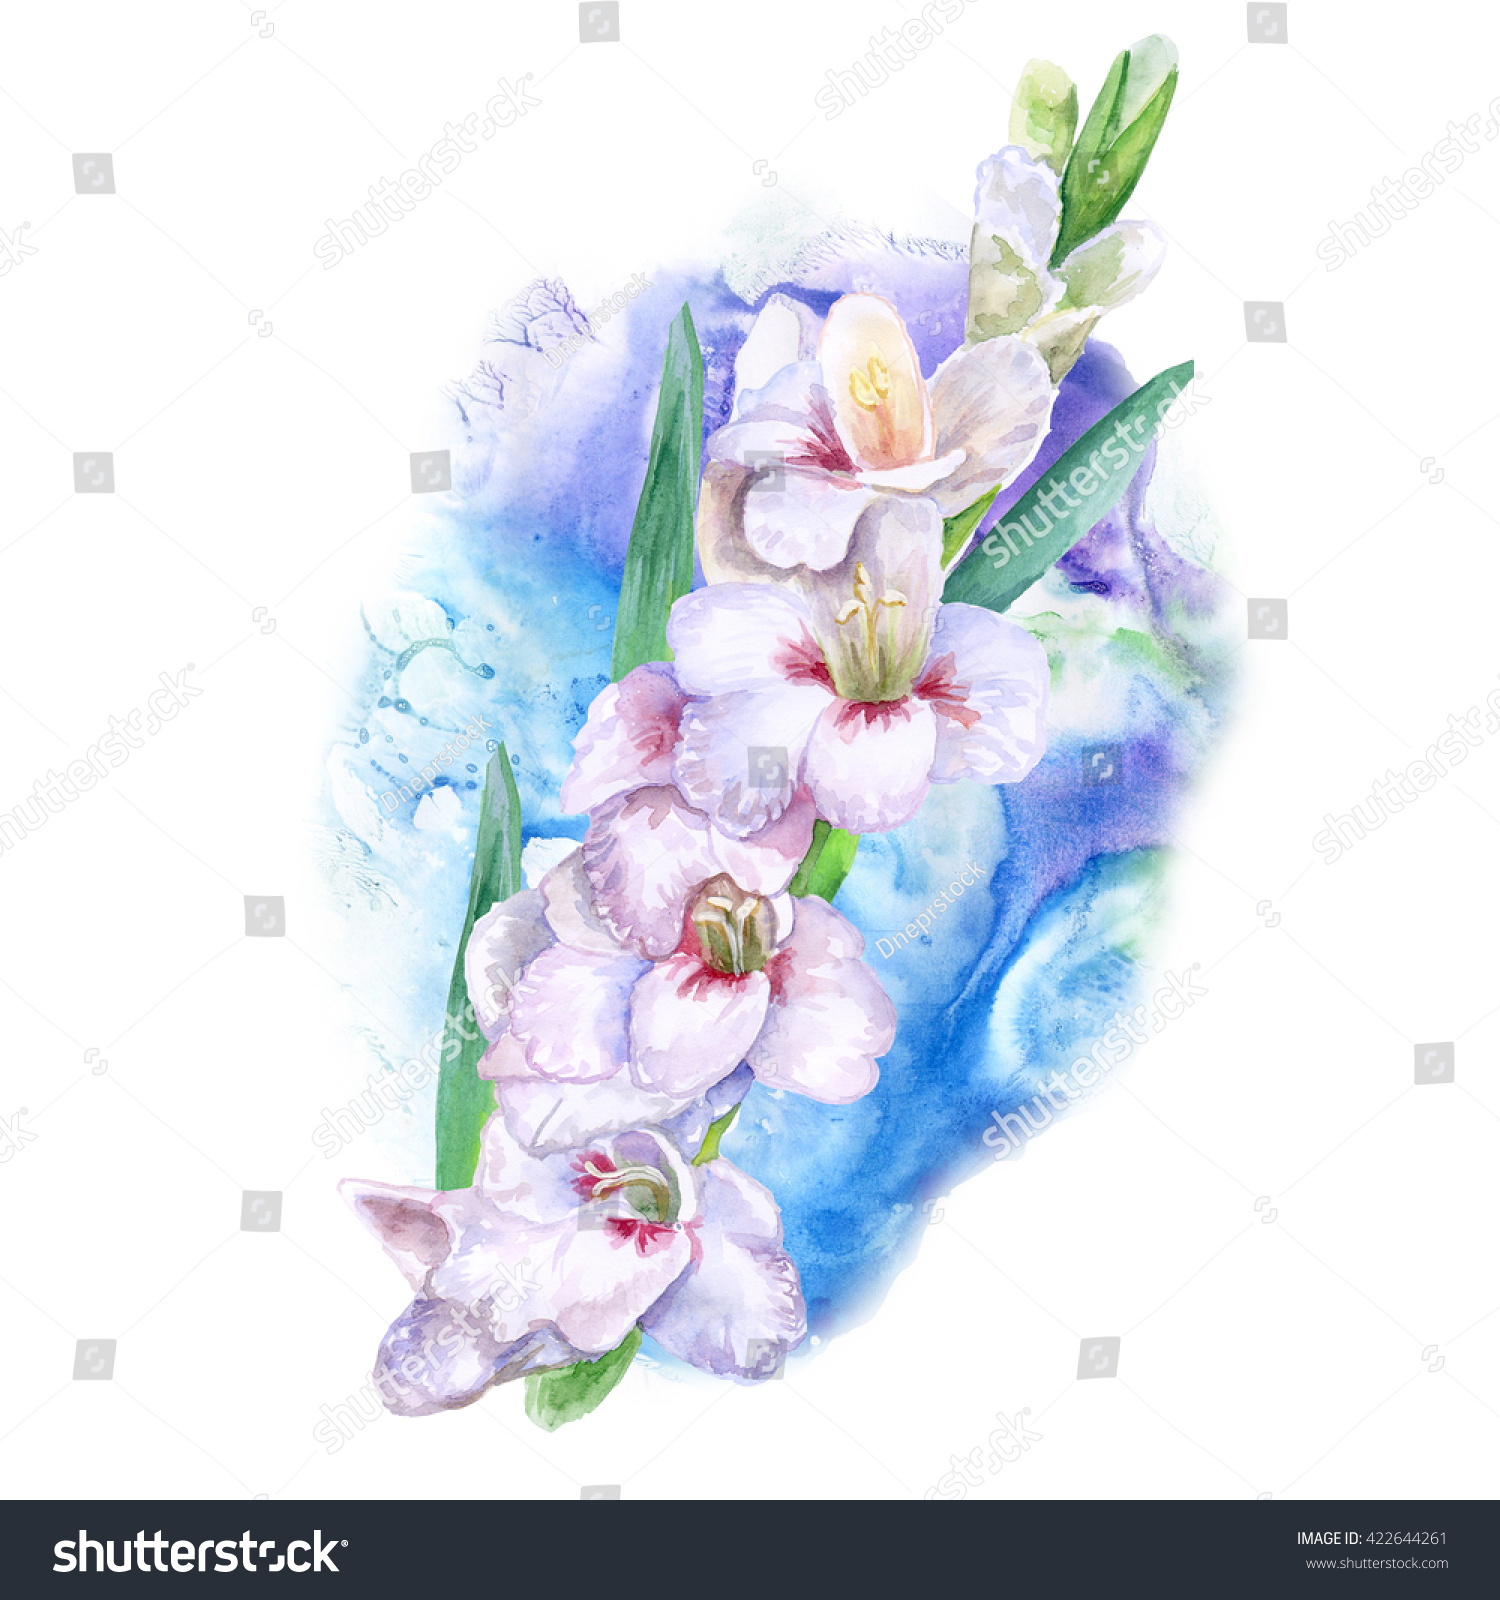 Watercolor Drawing Of Spring Gladiolus Flowers Hand Drawn Painting